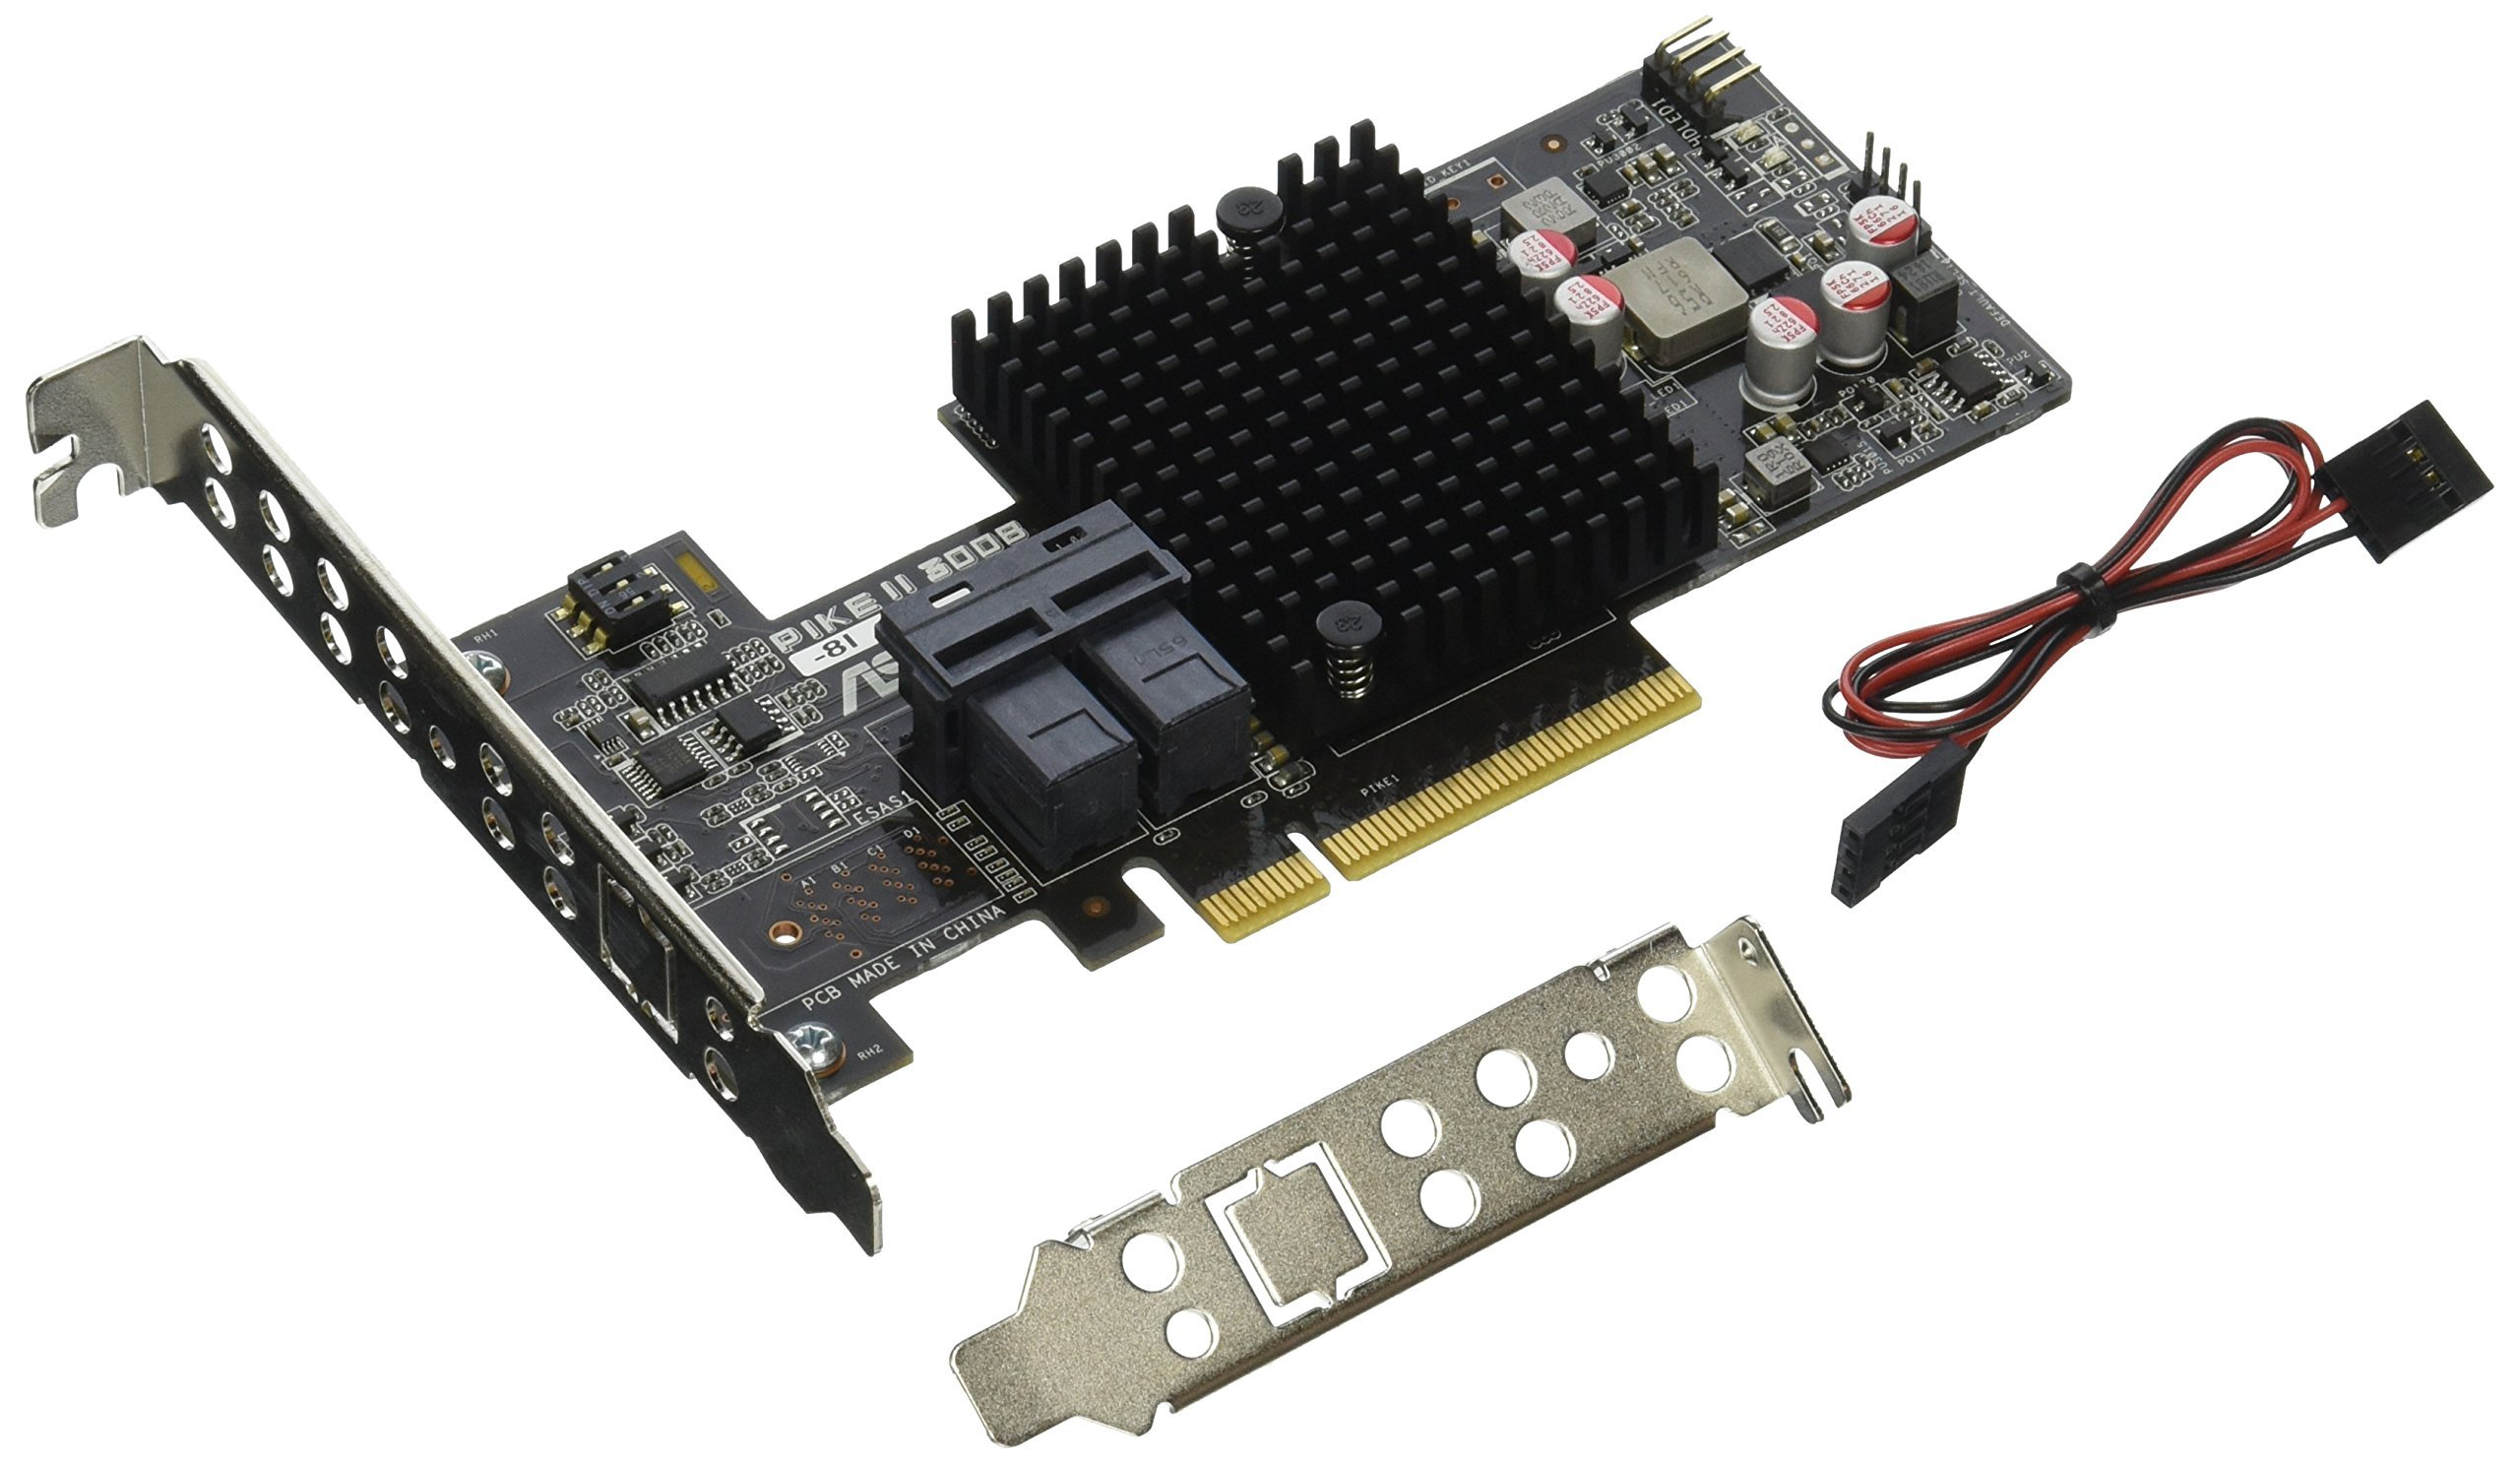 Asus PIKE II 3008-8i Storage Controller - Plug-In Card (PIKE II 3008-8I) by Asus